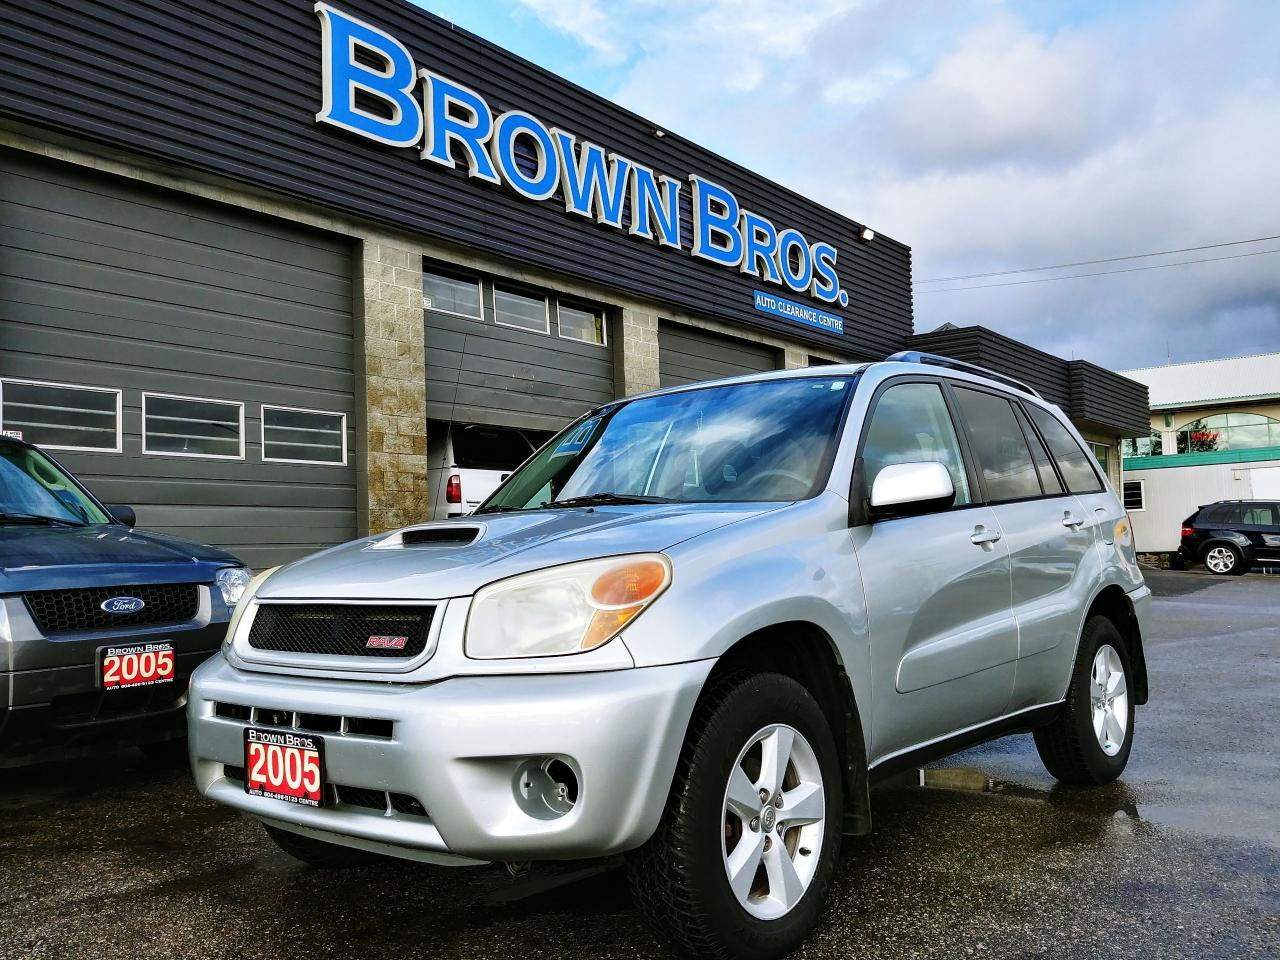 used 2005 toyota rav4 panoramic roof 4x4 for sale in surrey british columbia. Black Bedroom Furniture Sets. Home Design Ideas